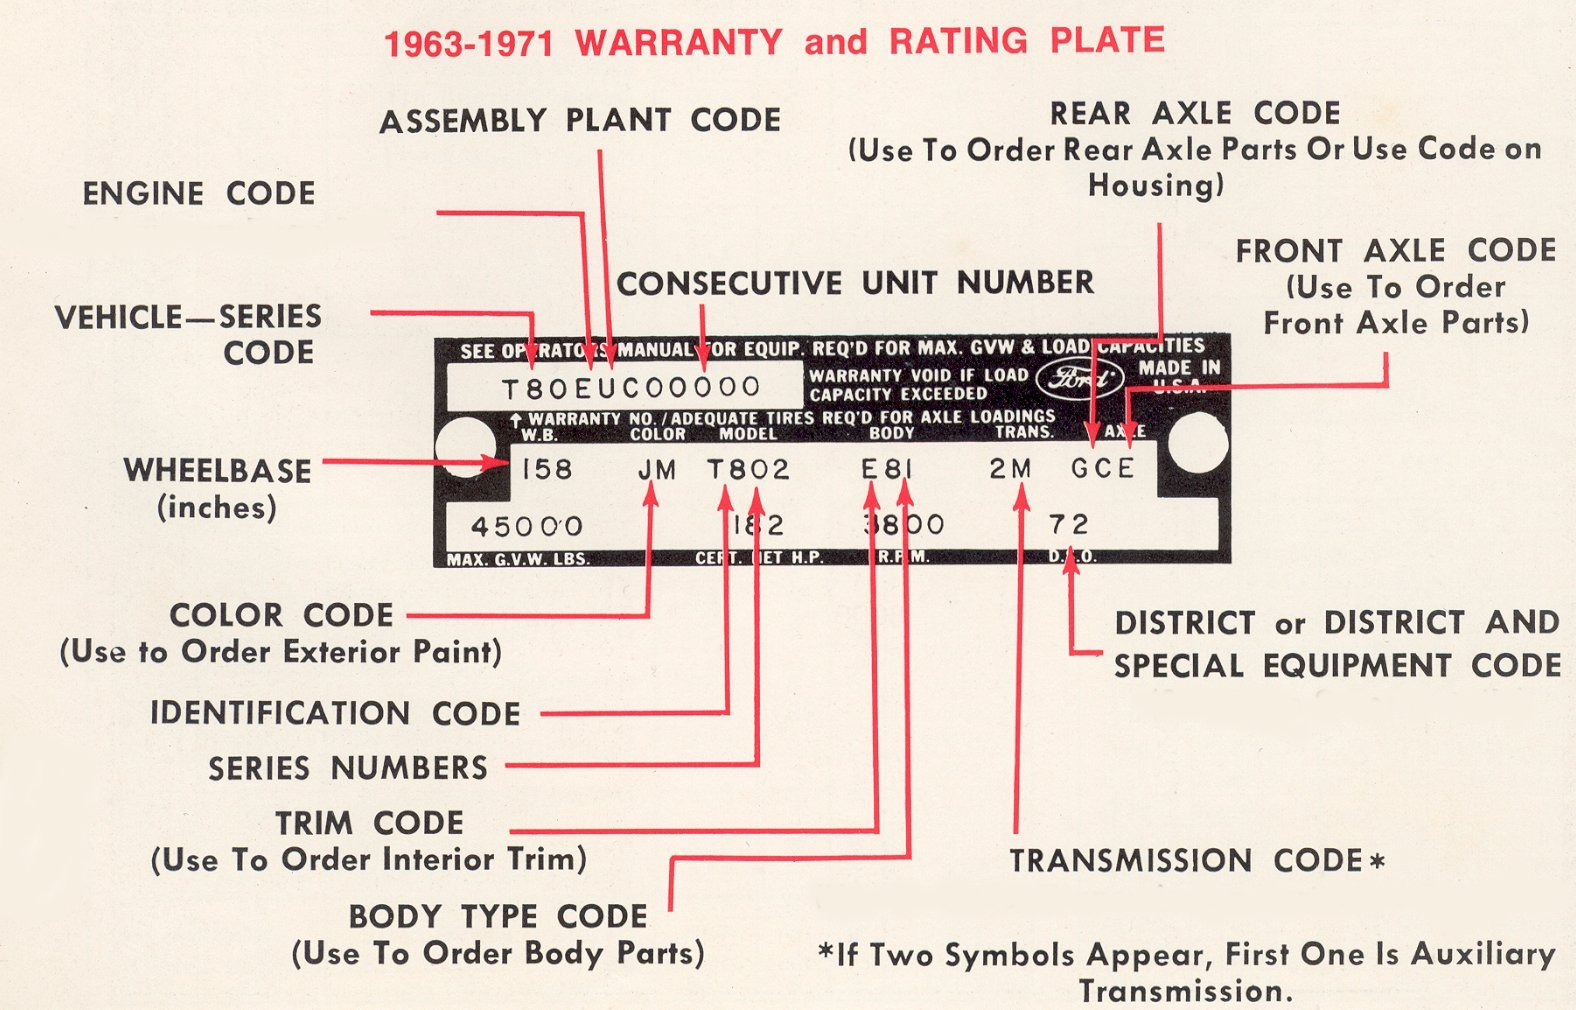 1962 ford fairlane wiring diagram with 3aebl Think Going Buy 1964 Ford F100 on 1968 Mustang Wiring Diagram Vacuum Schematics as well Holley 500 2 Barrel Diagram in addition 1969 Ford F100 Alternator Wiring Diagram Html as well 1964 Corvette Convertible For Sale Wiring Diagrams moreover 858689 1960 F 100 Turn Signal.